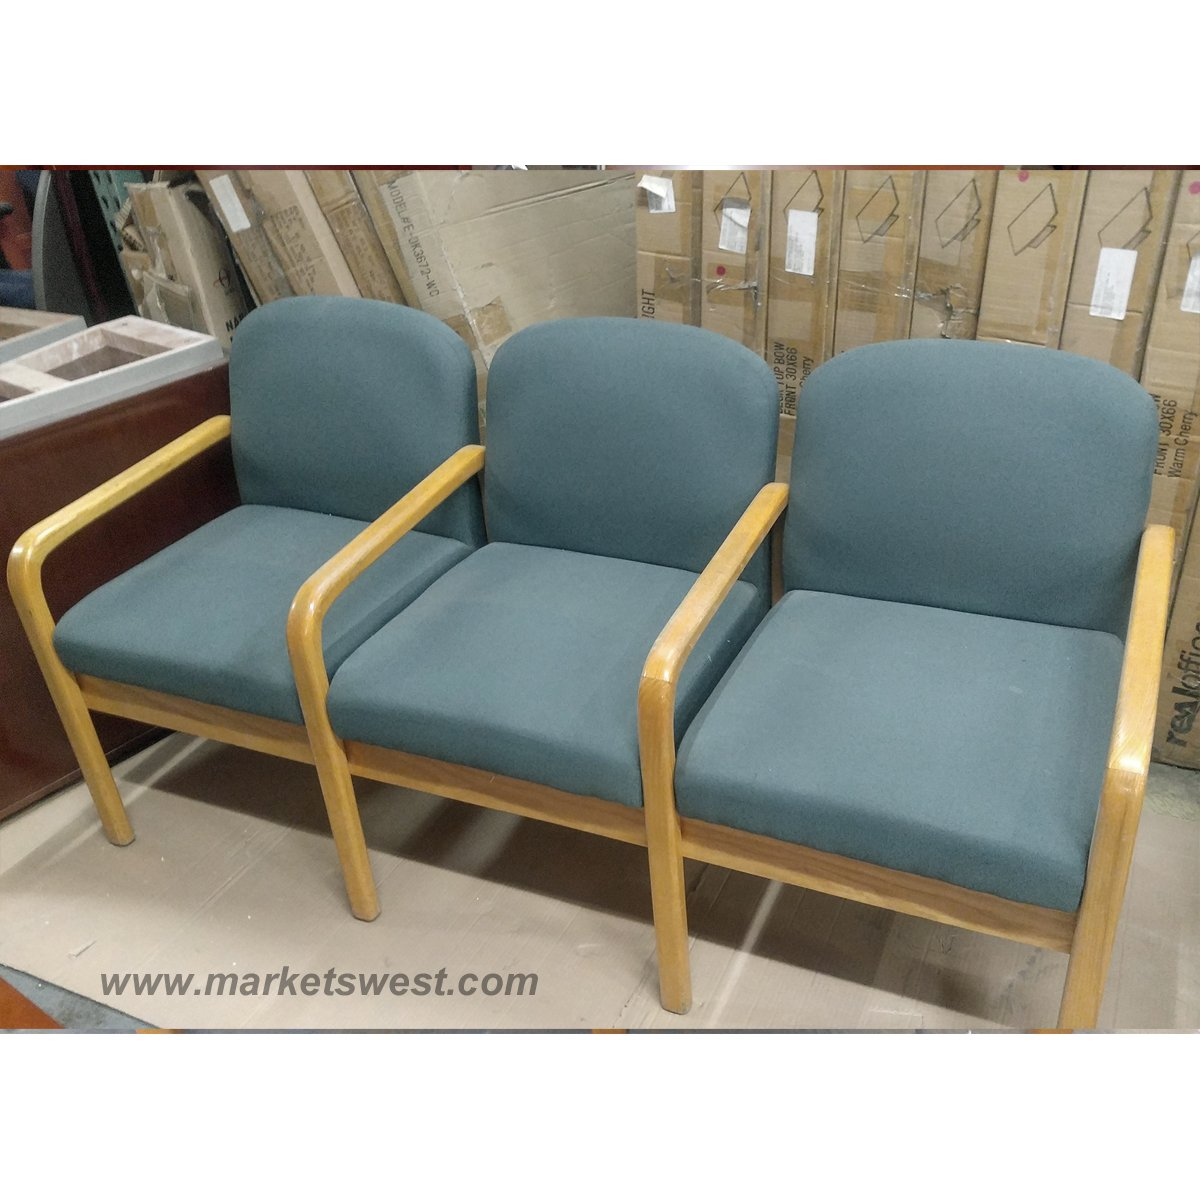 used oak table and chairs woven folding chair complete set of blue fabric waiting room